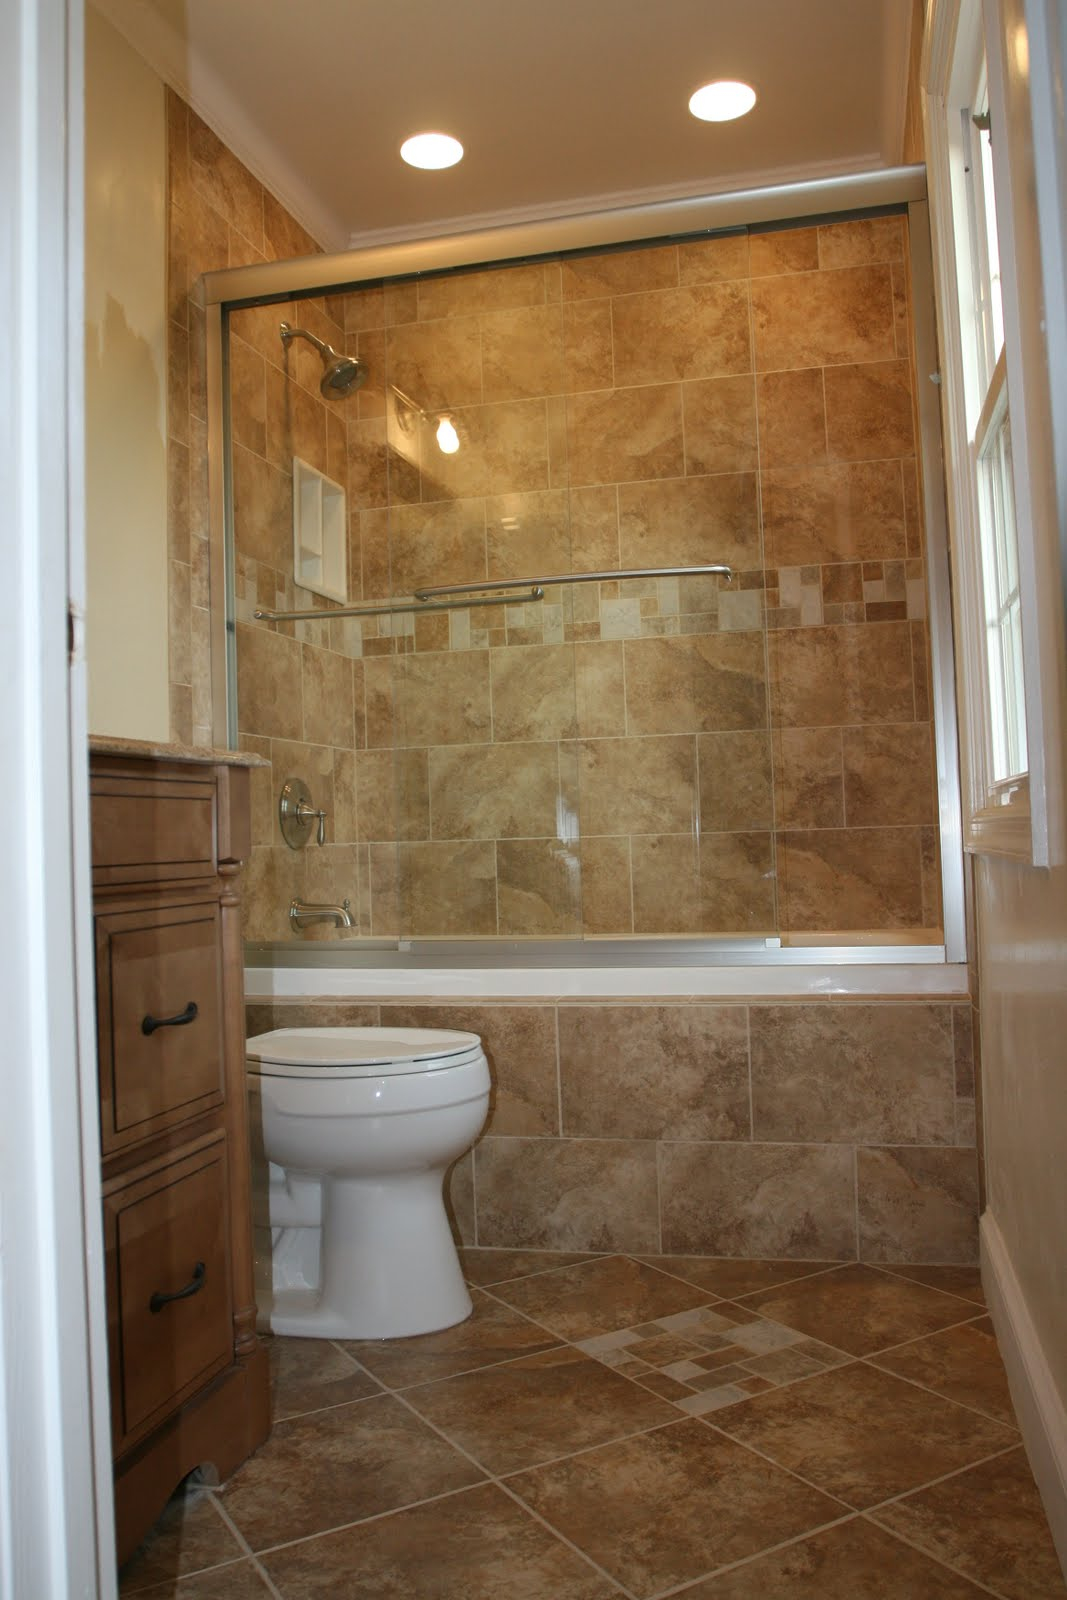 Bathroom remodeling design ideas tile shower niches for Bathroom design and remodel